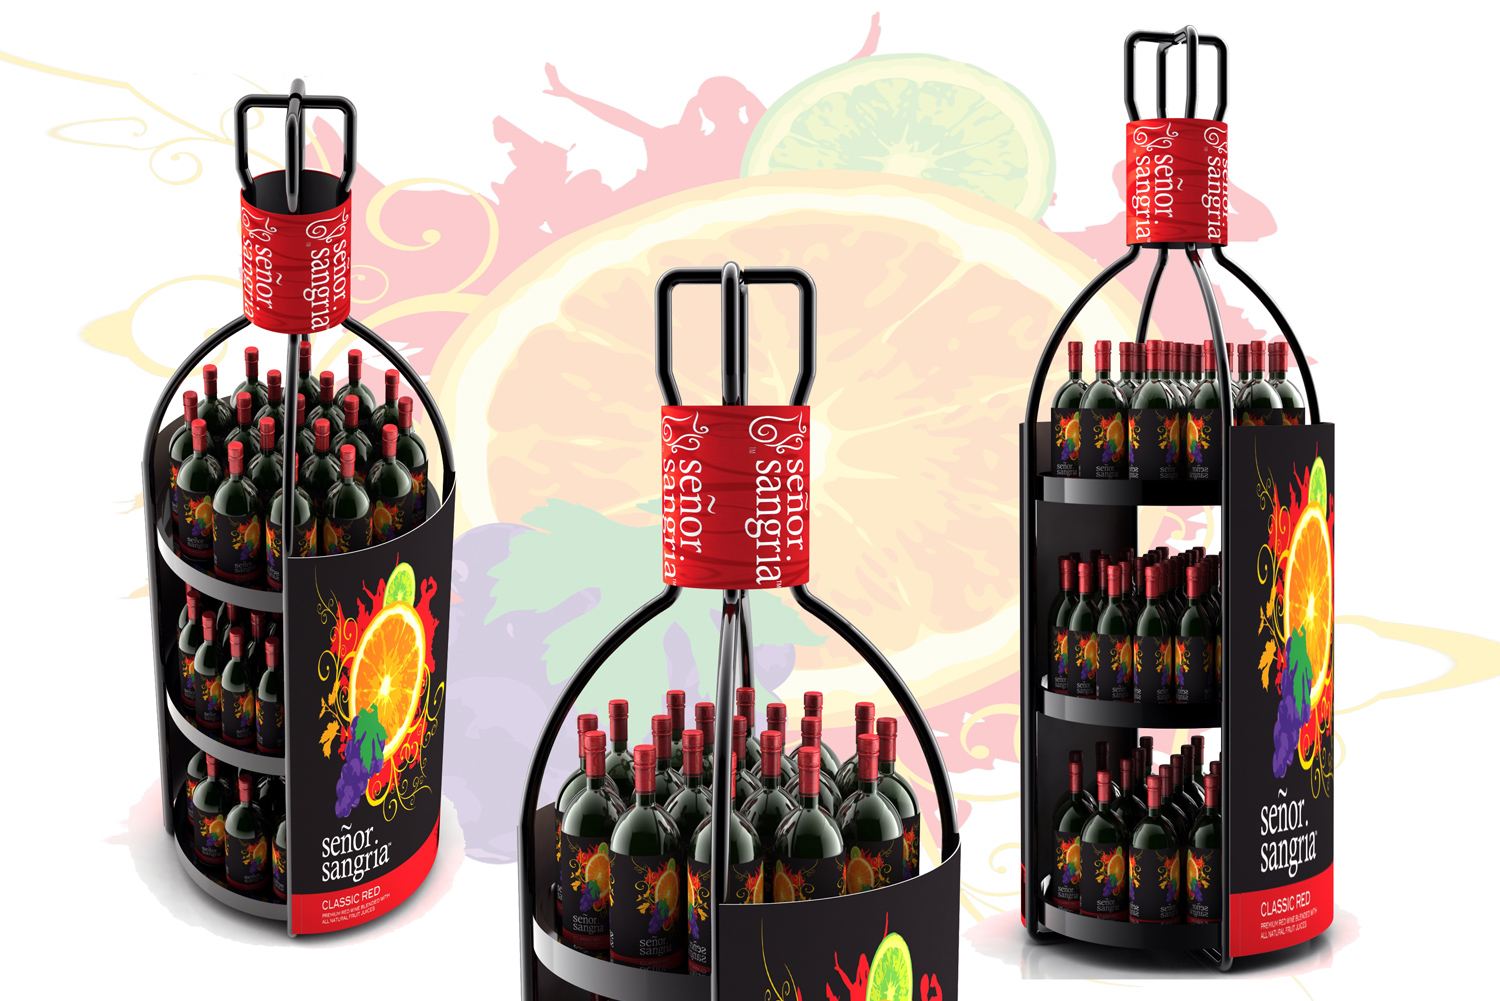 Senor Sangria - Custom Point of Purchase Displays